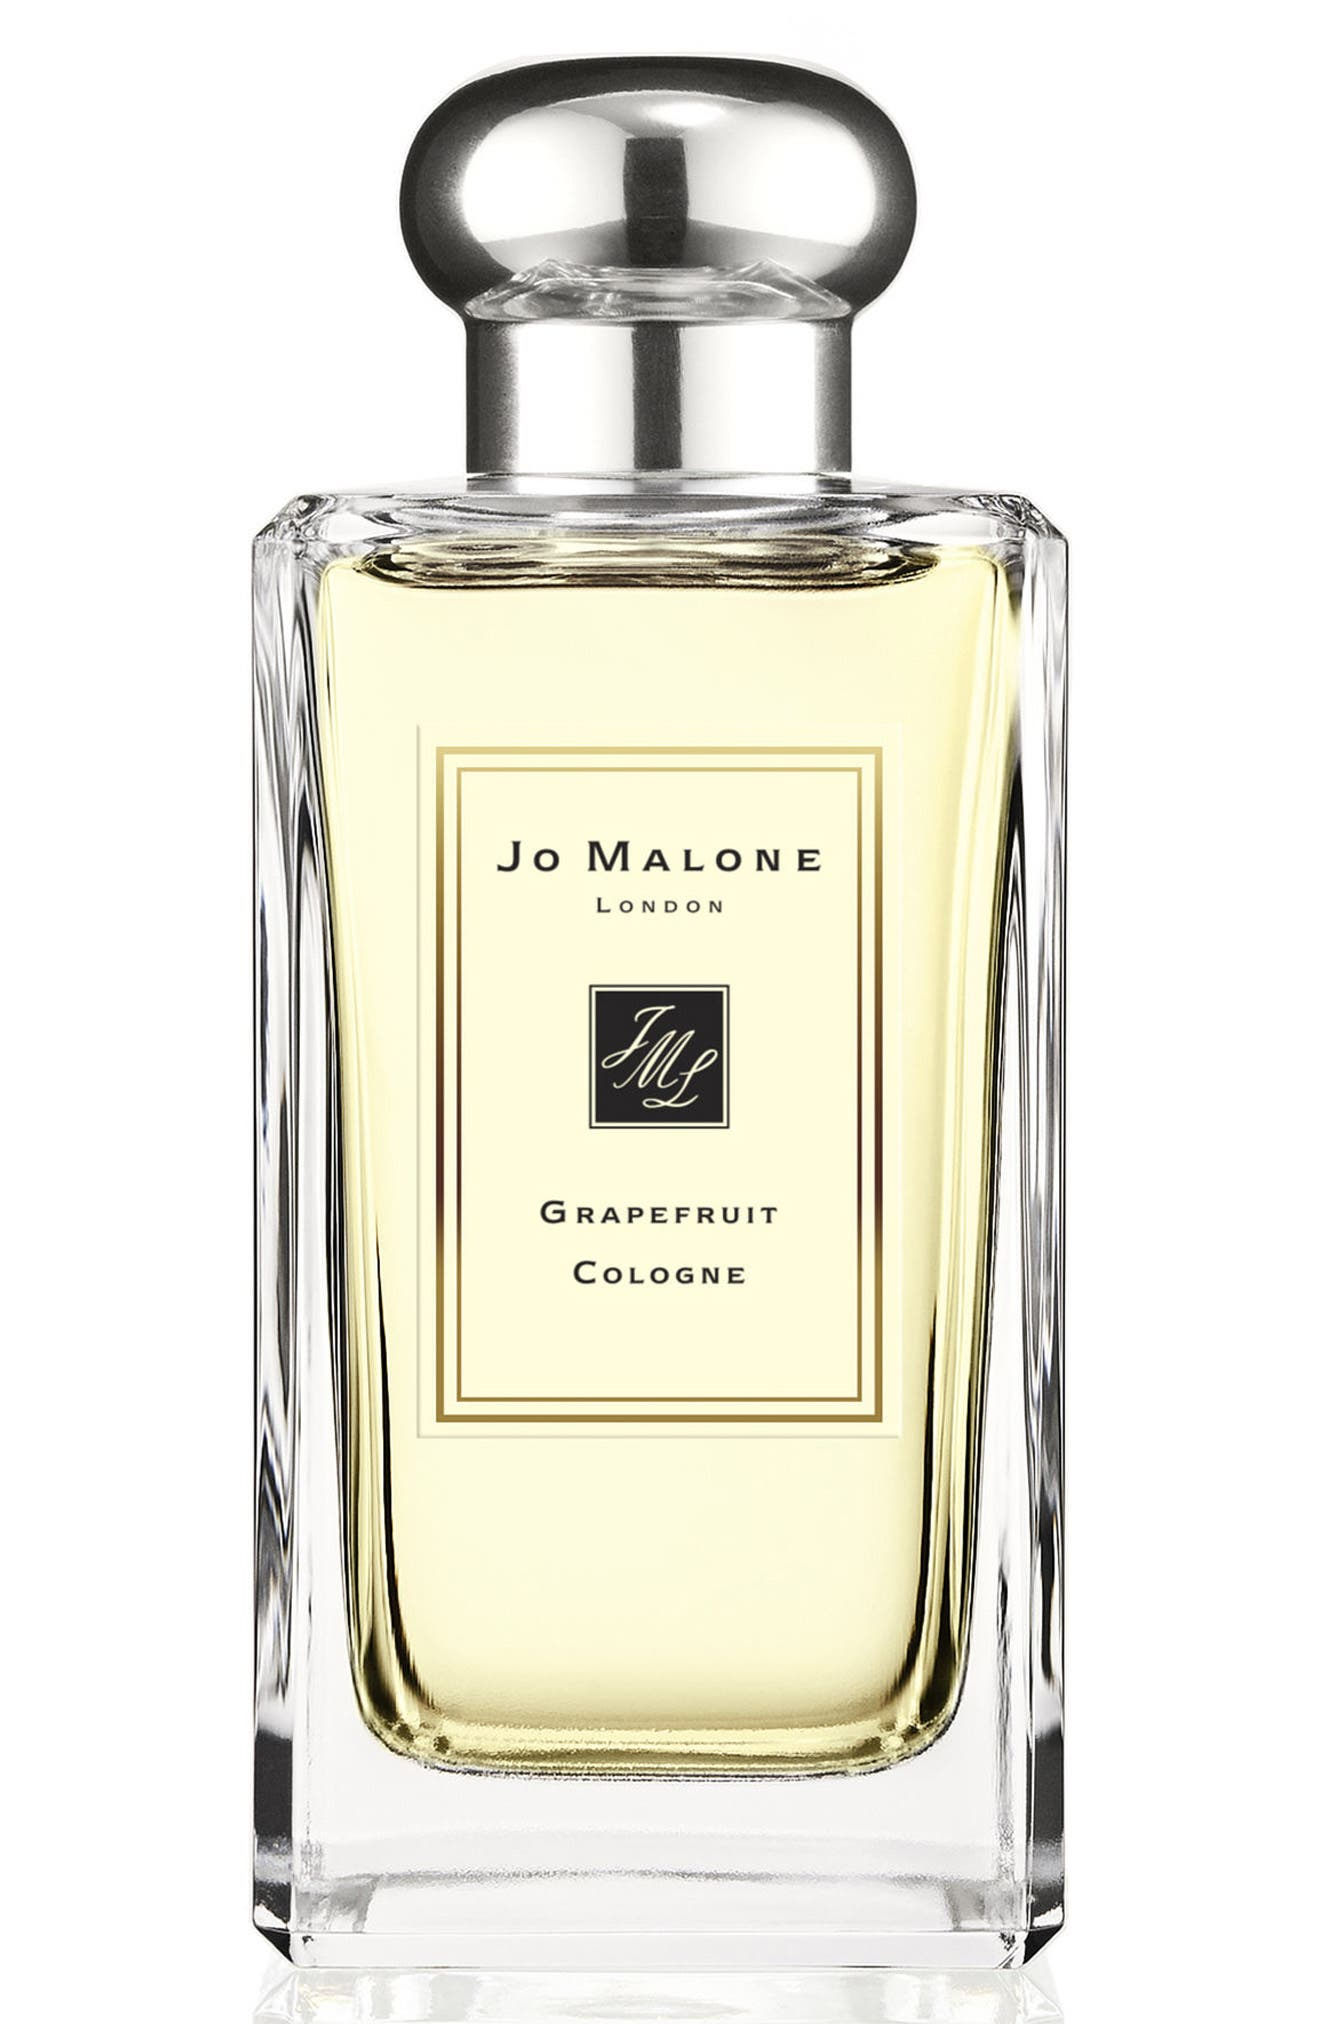 JO MALONE LONDON™ 'Grapefruit' Cologne